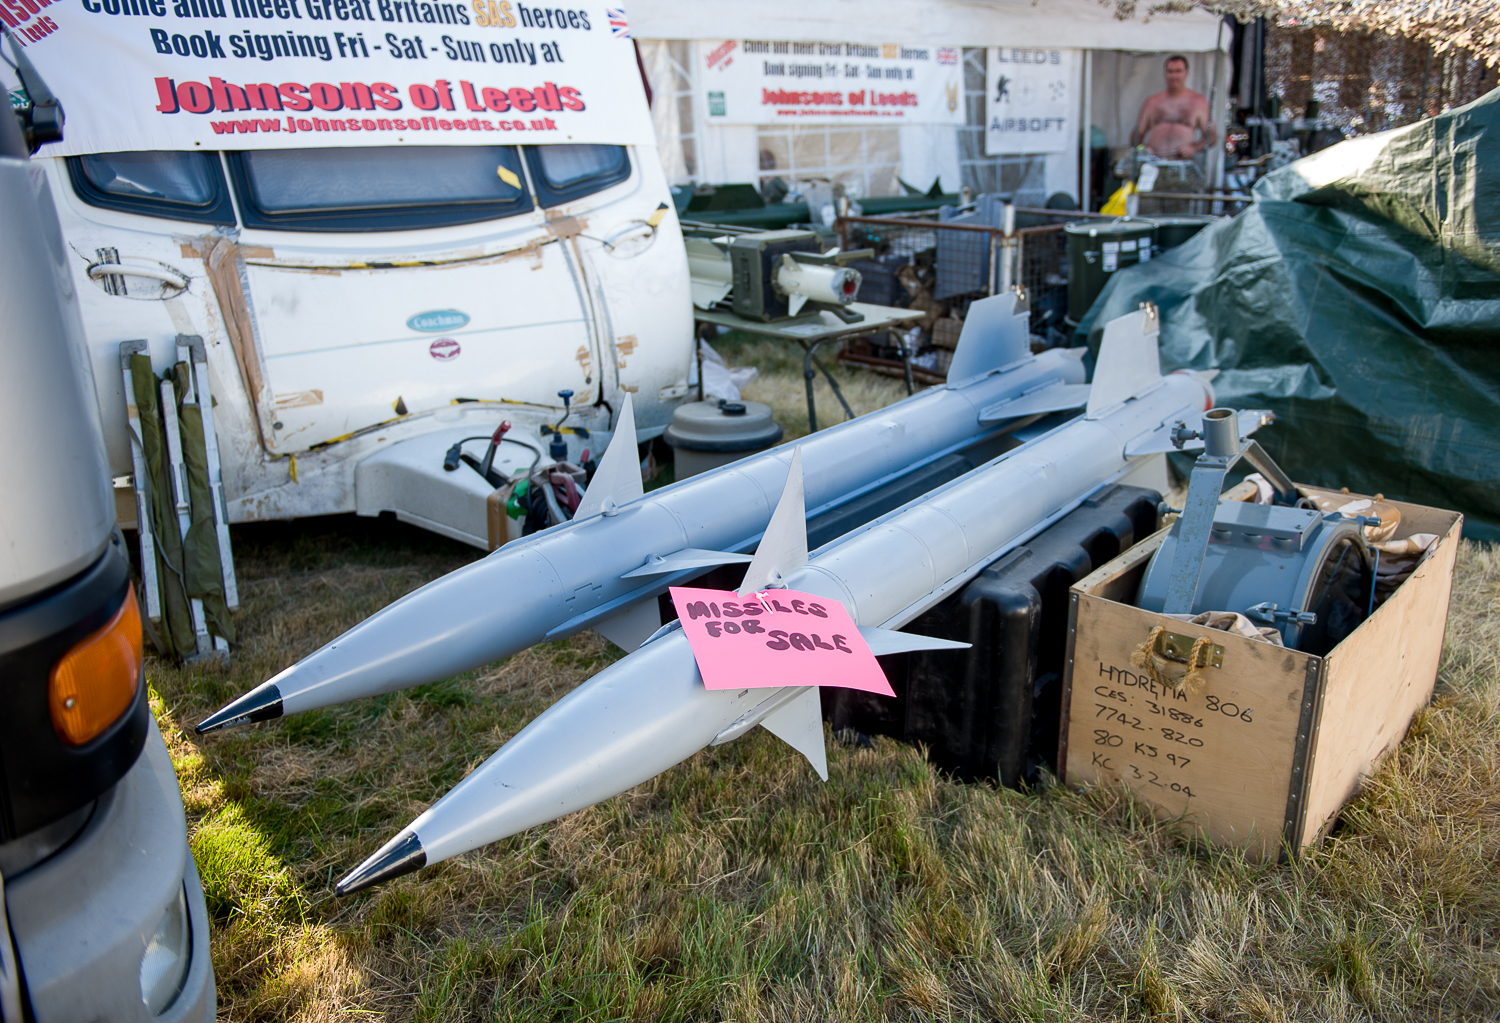 """Missiles for sale"", War and peace show, Kent"